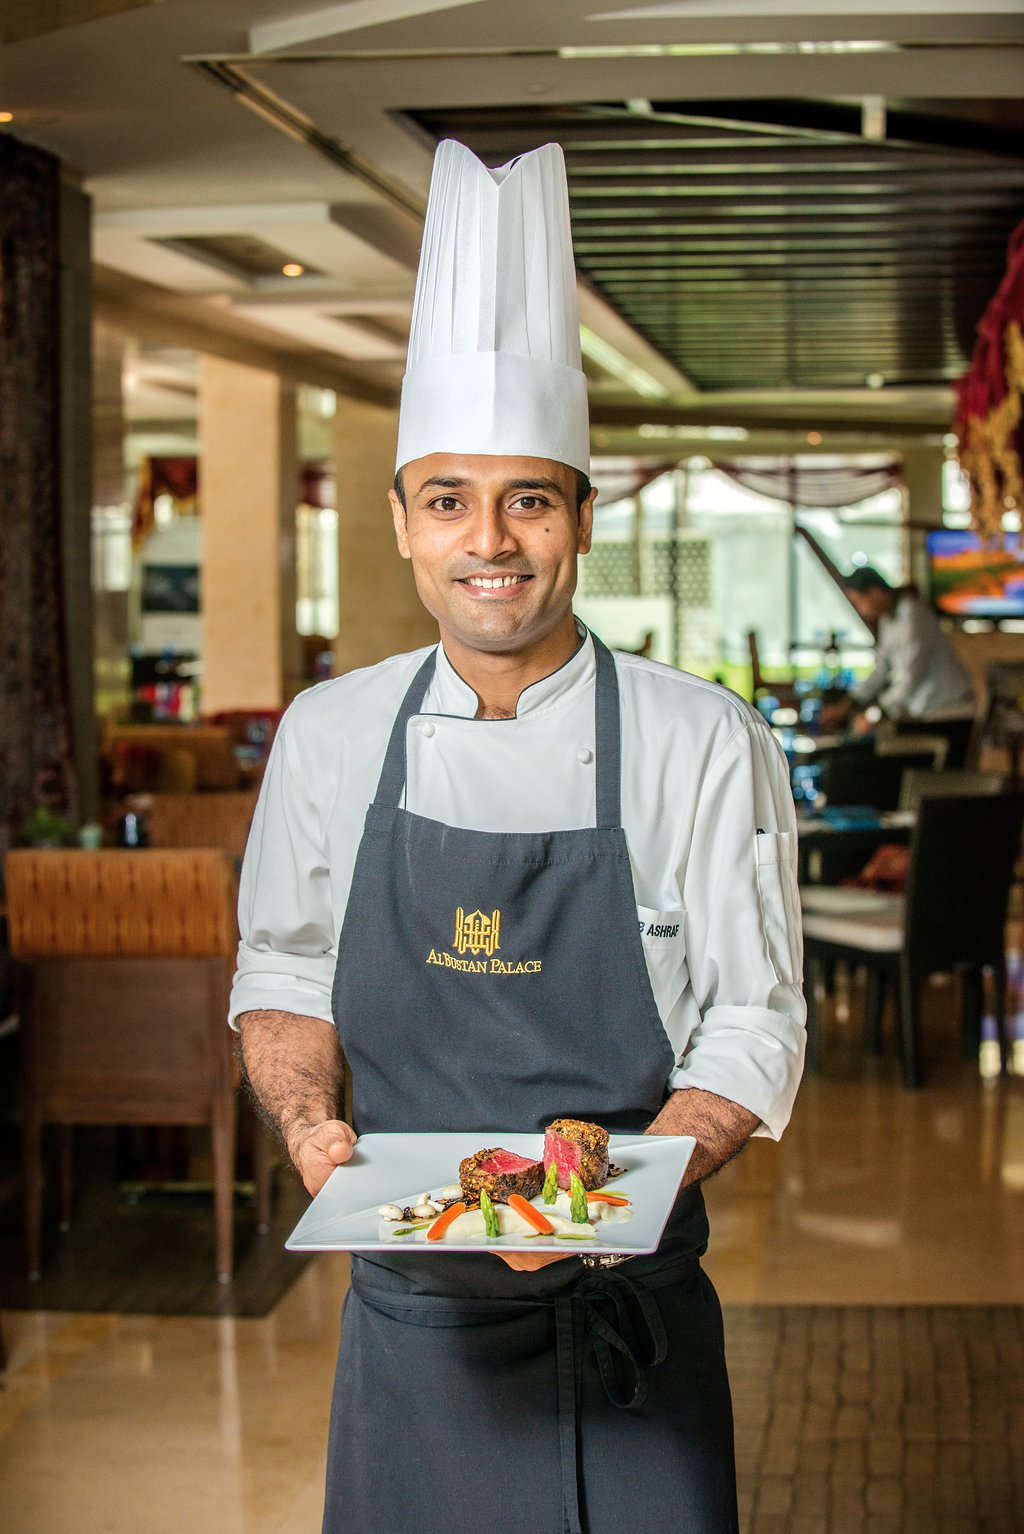 Al Bustan Palace Chef